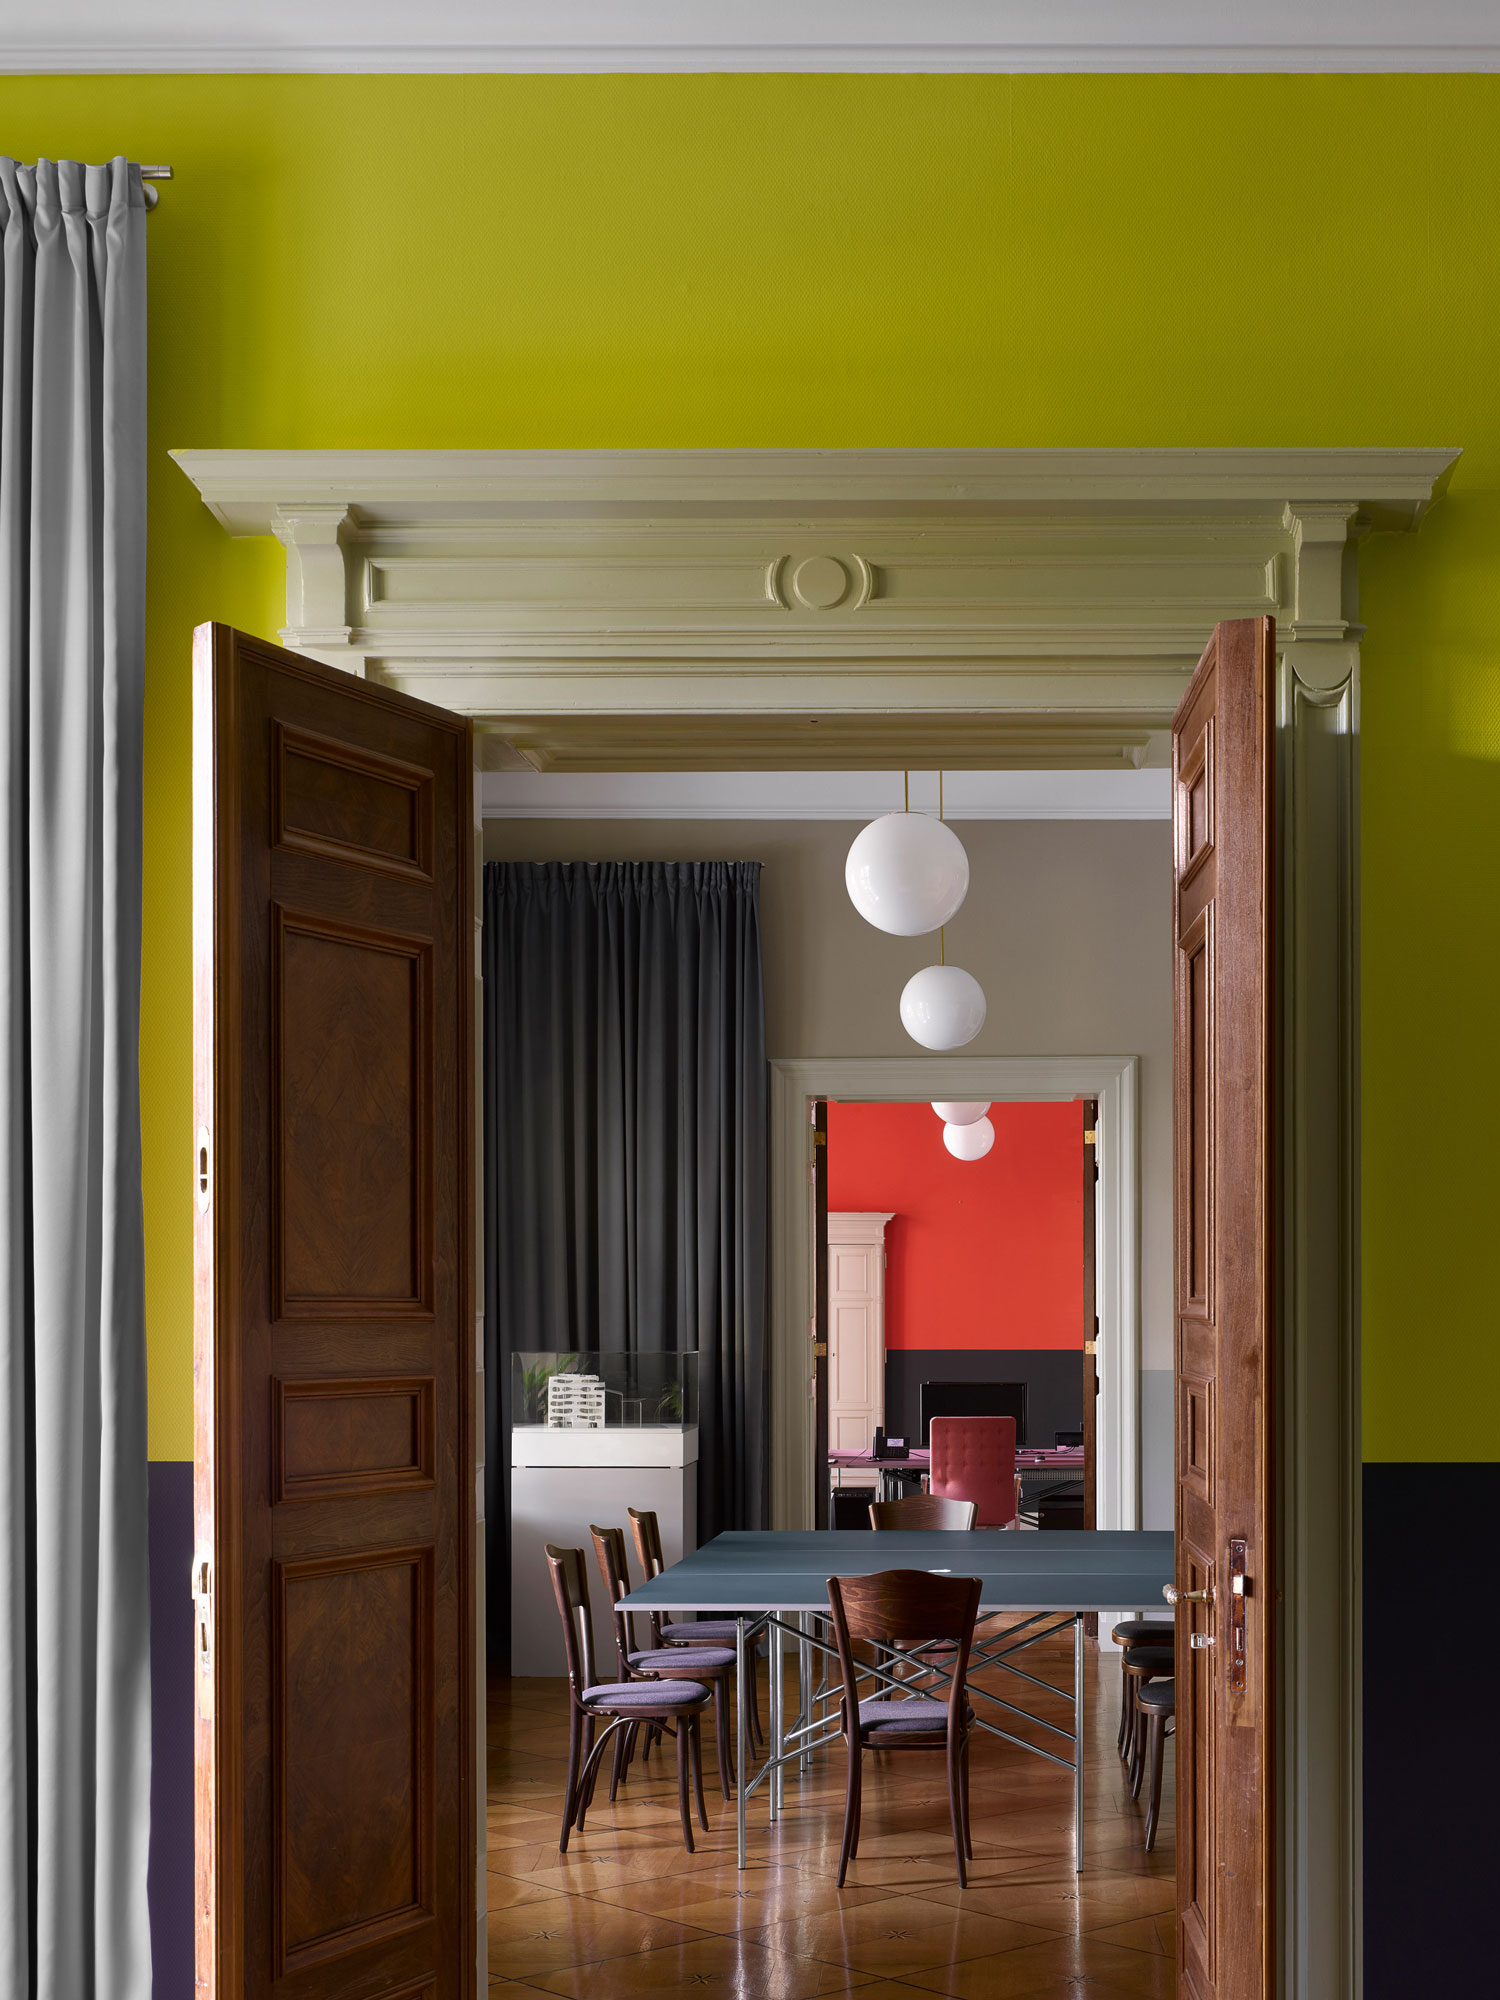 Grand C19th Palais in Berlin Reimagined as an Office by David Kohn Architects | Yellowtrace